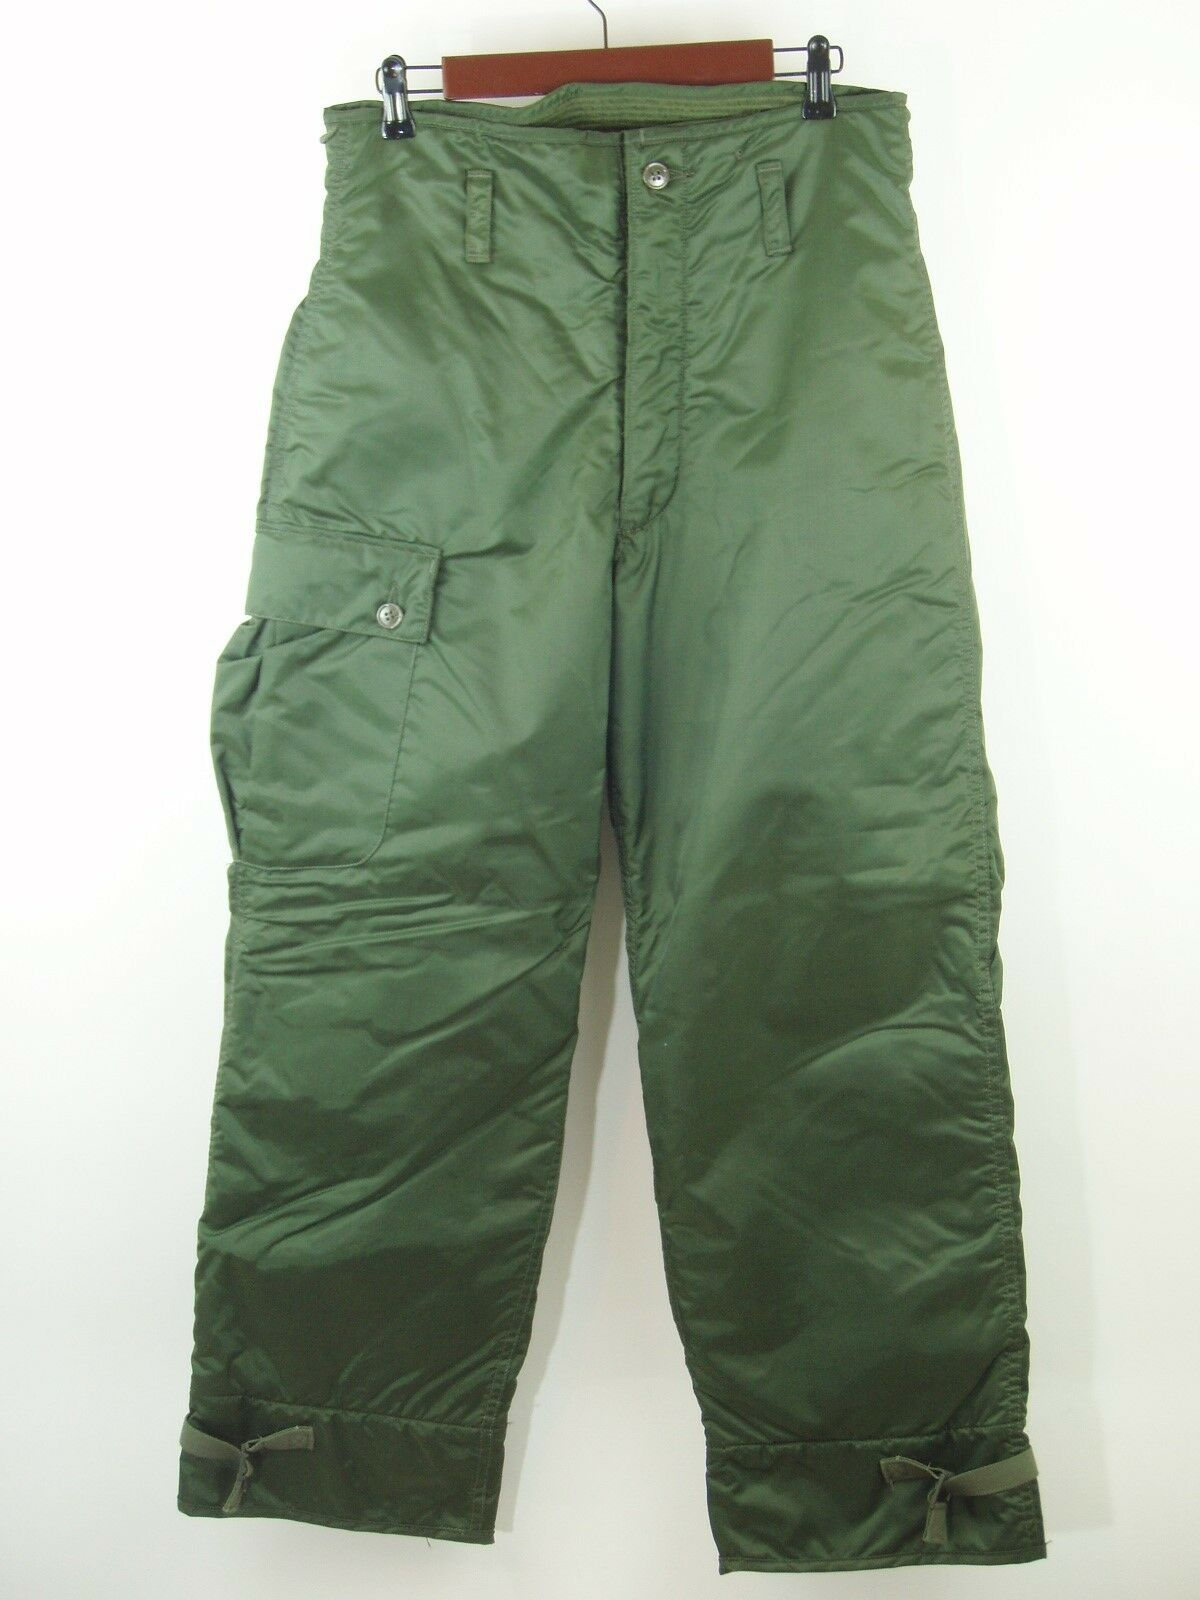 Military Extreme Cold Trousers Snow Pants  Size Small 27-30 Weather IMPERMEABLE  buy best